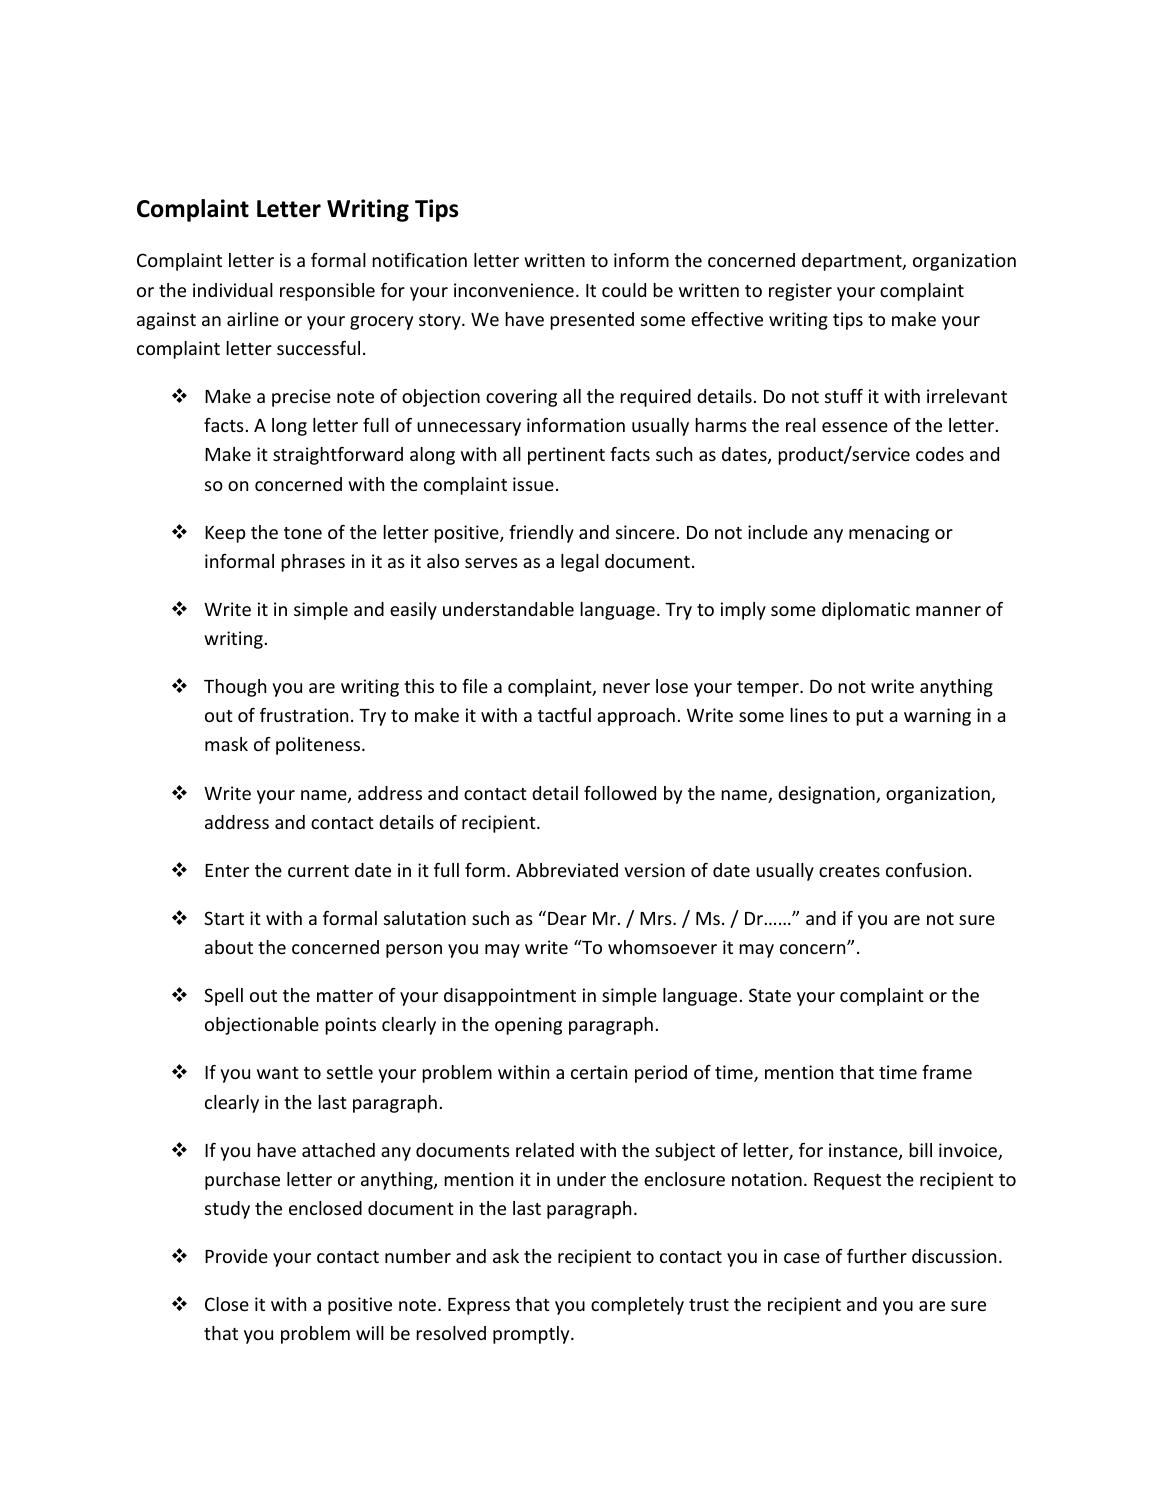 Complaint letter writing tips by sample letters issuu expocarfo